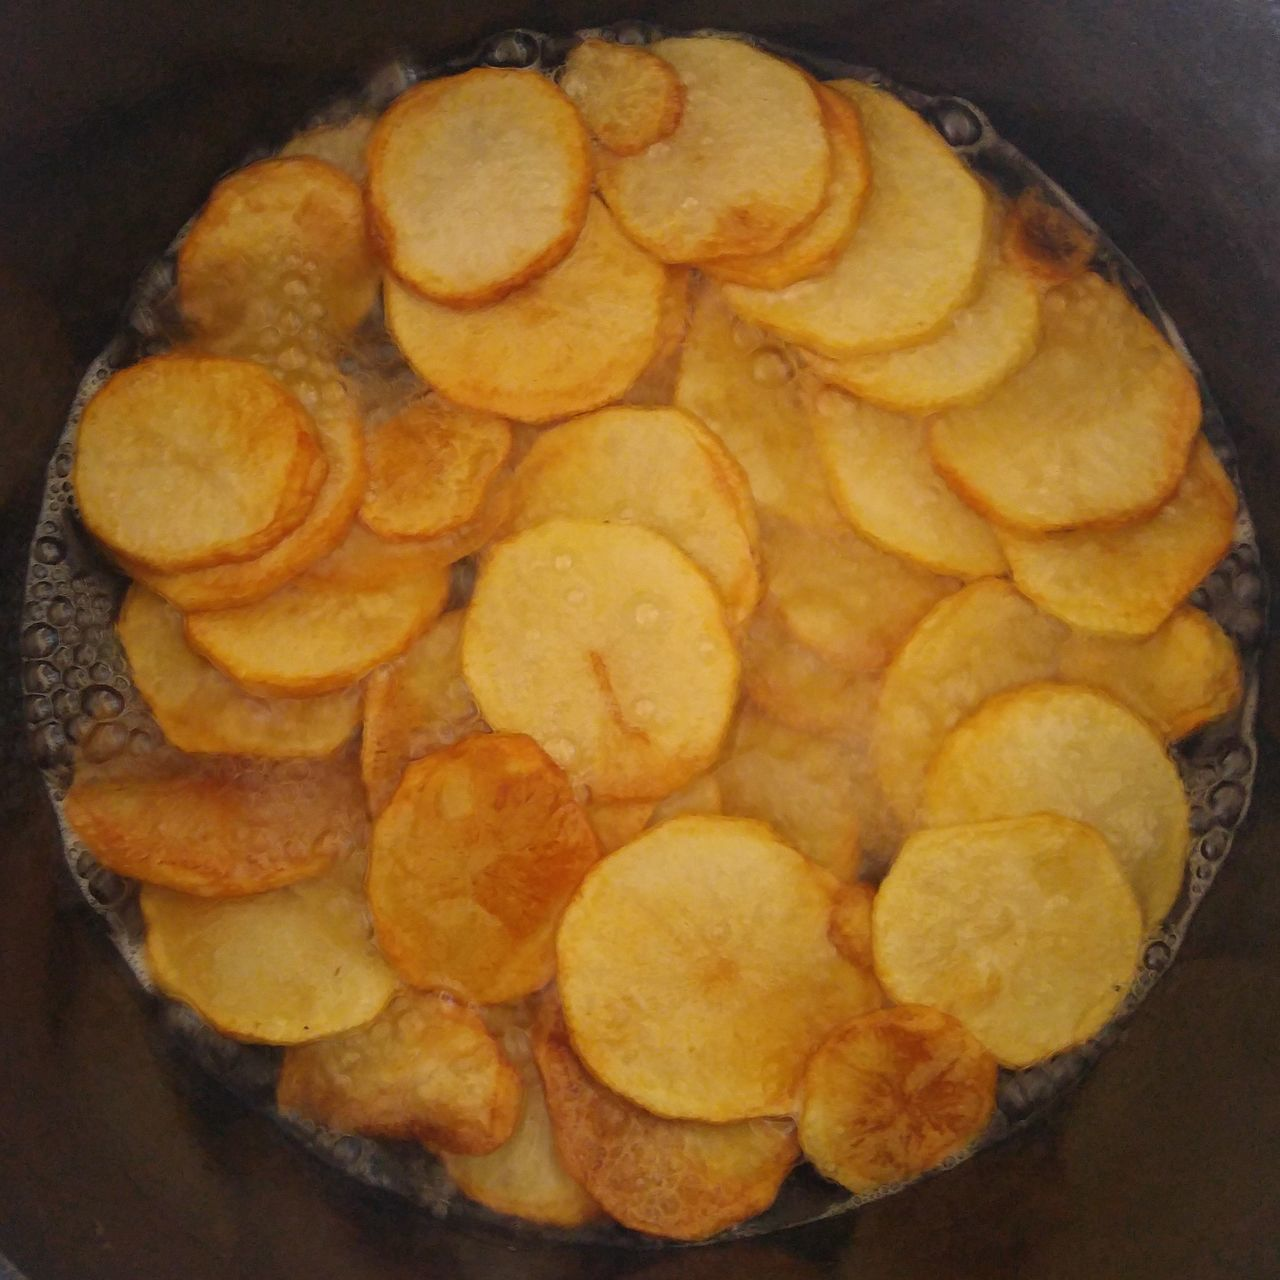 Chips/Crisps Food And Drink Indoors  Salty Food Homemade Snack Time Mom's Cooking Chips Crisps Healthy Snack Cast Iron Cooking Food Close-up No People Freshness Ready-to-eat Day